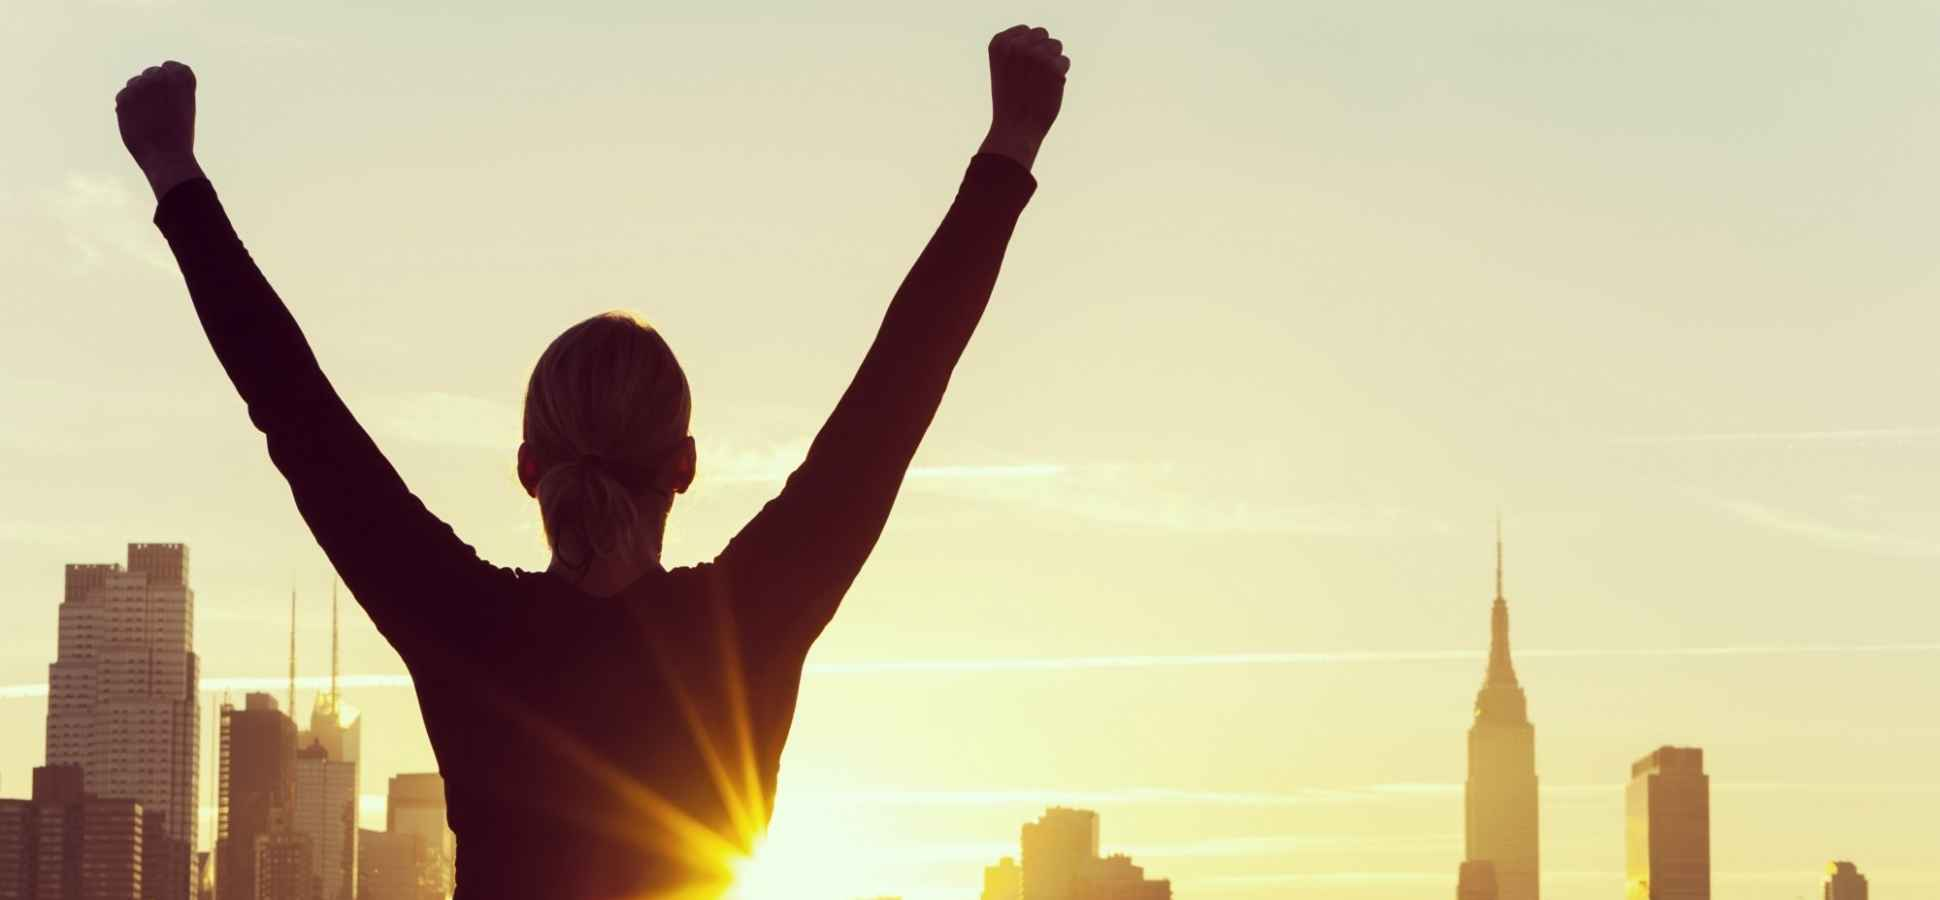 10 Habits That the Most Successful People Practice Constantly